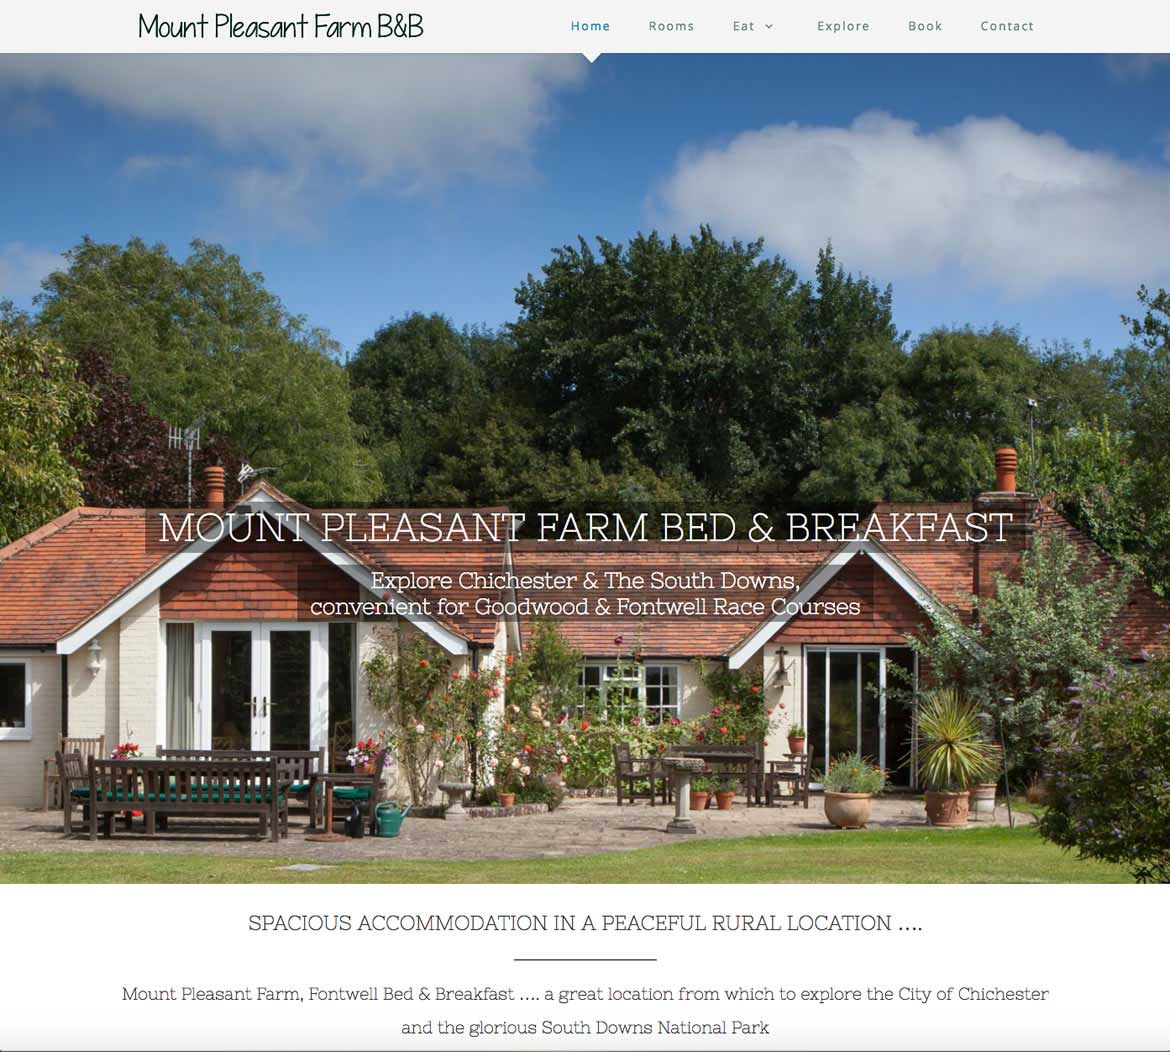 Bed & Breakfast website by Red Leaf Chichester